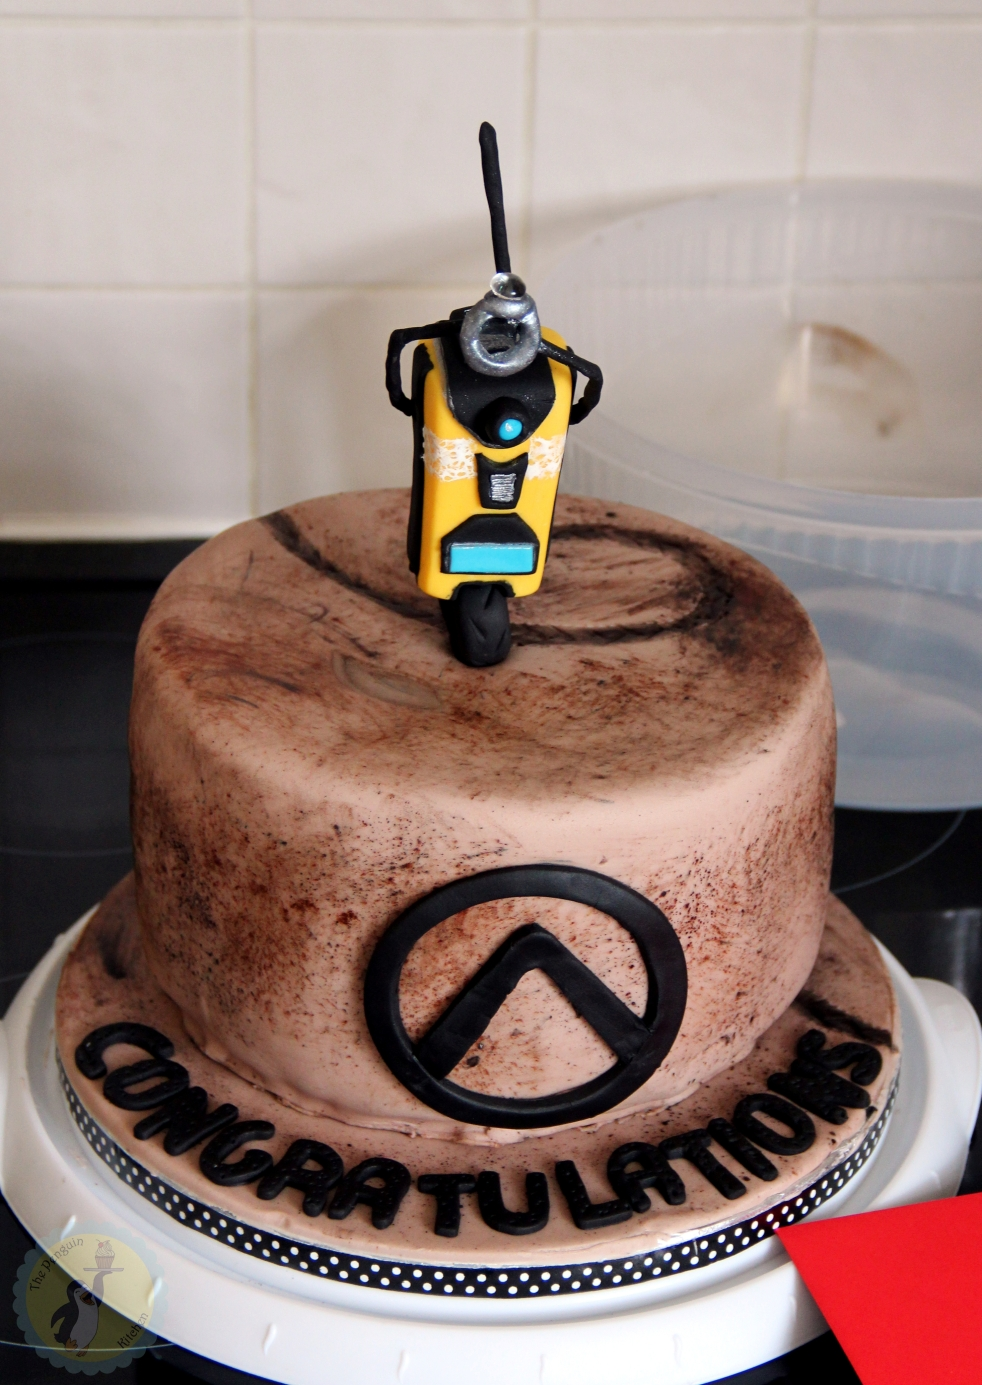 Borderlands Engagement Cake - Engagement cake themed to the Borderlands games, with a Claptrap fondant figure holding an engagement ring